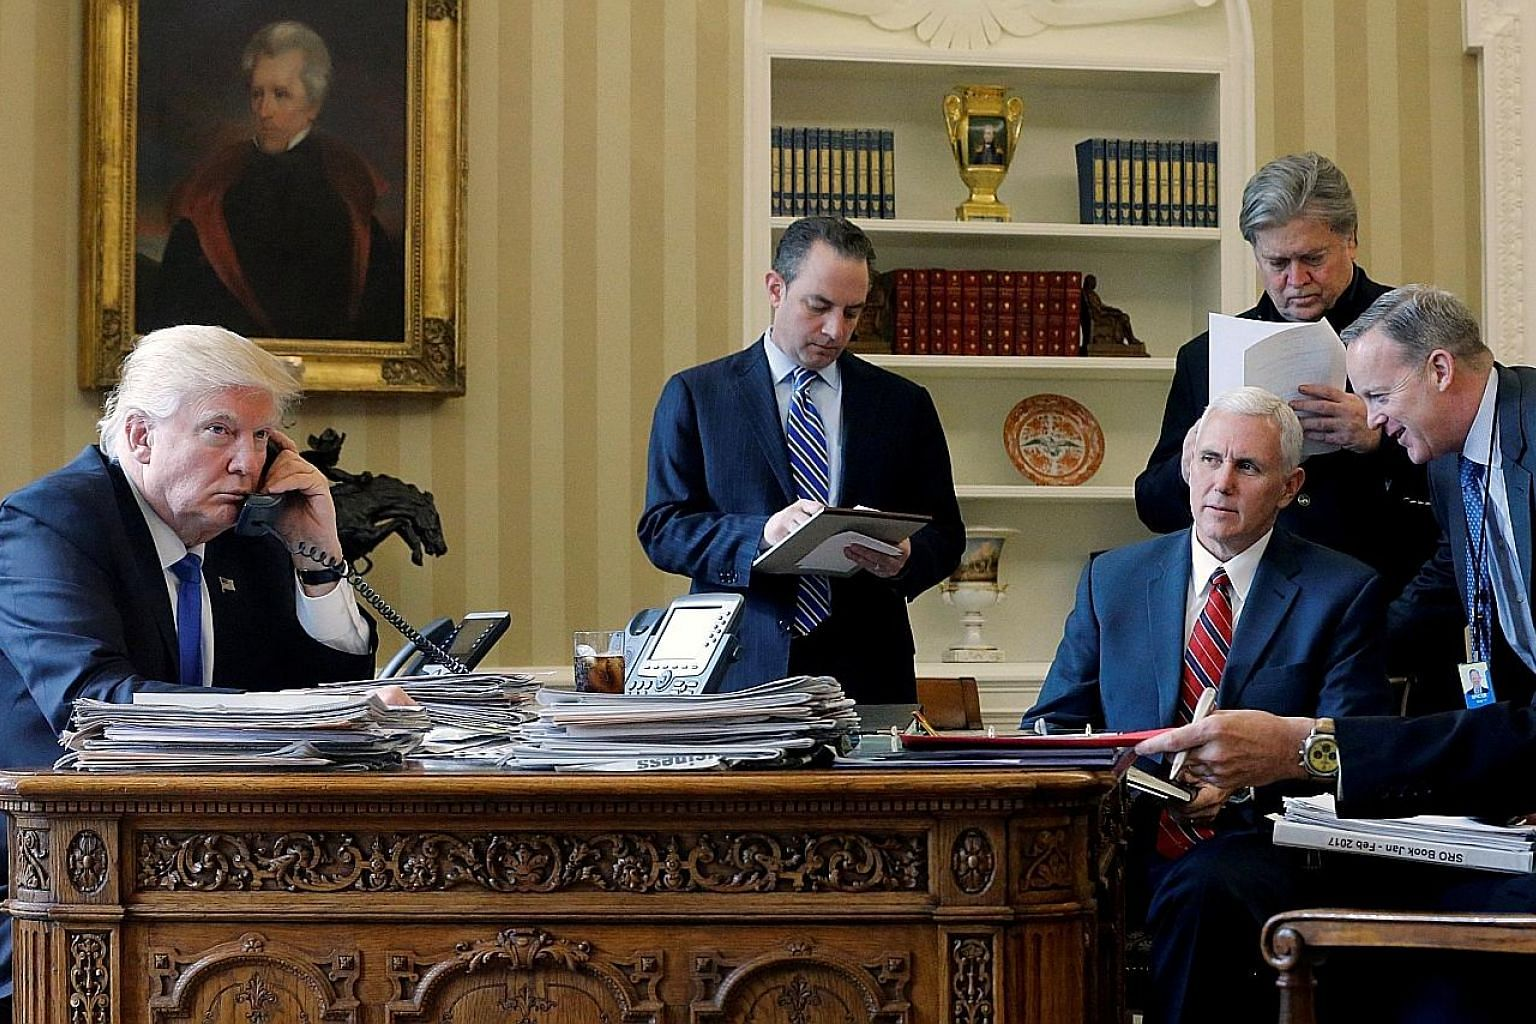 Mr Donald Trump on the phone with Mr Vladimir Putin (below) in January, in the presence of (from left) White House Chief of Staff Reince Priebus, Vice-President Mike Pence, chief strategist Steve Bannon and press secretary Sean Spicer.